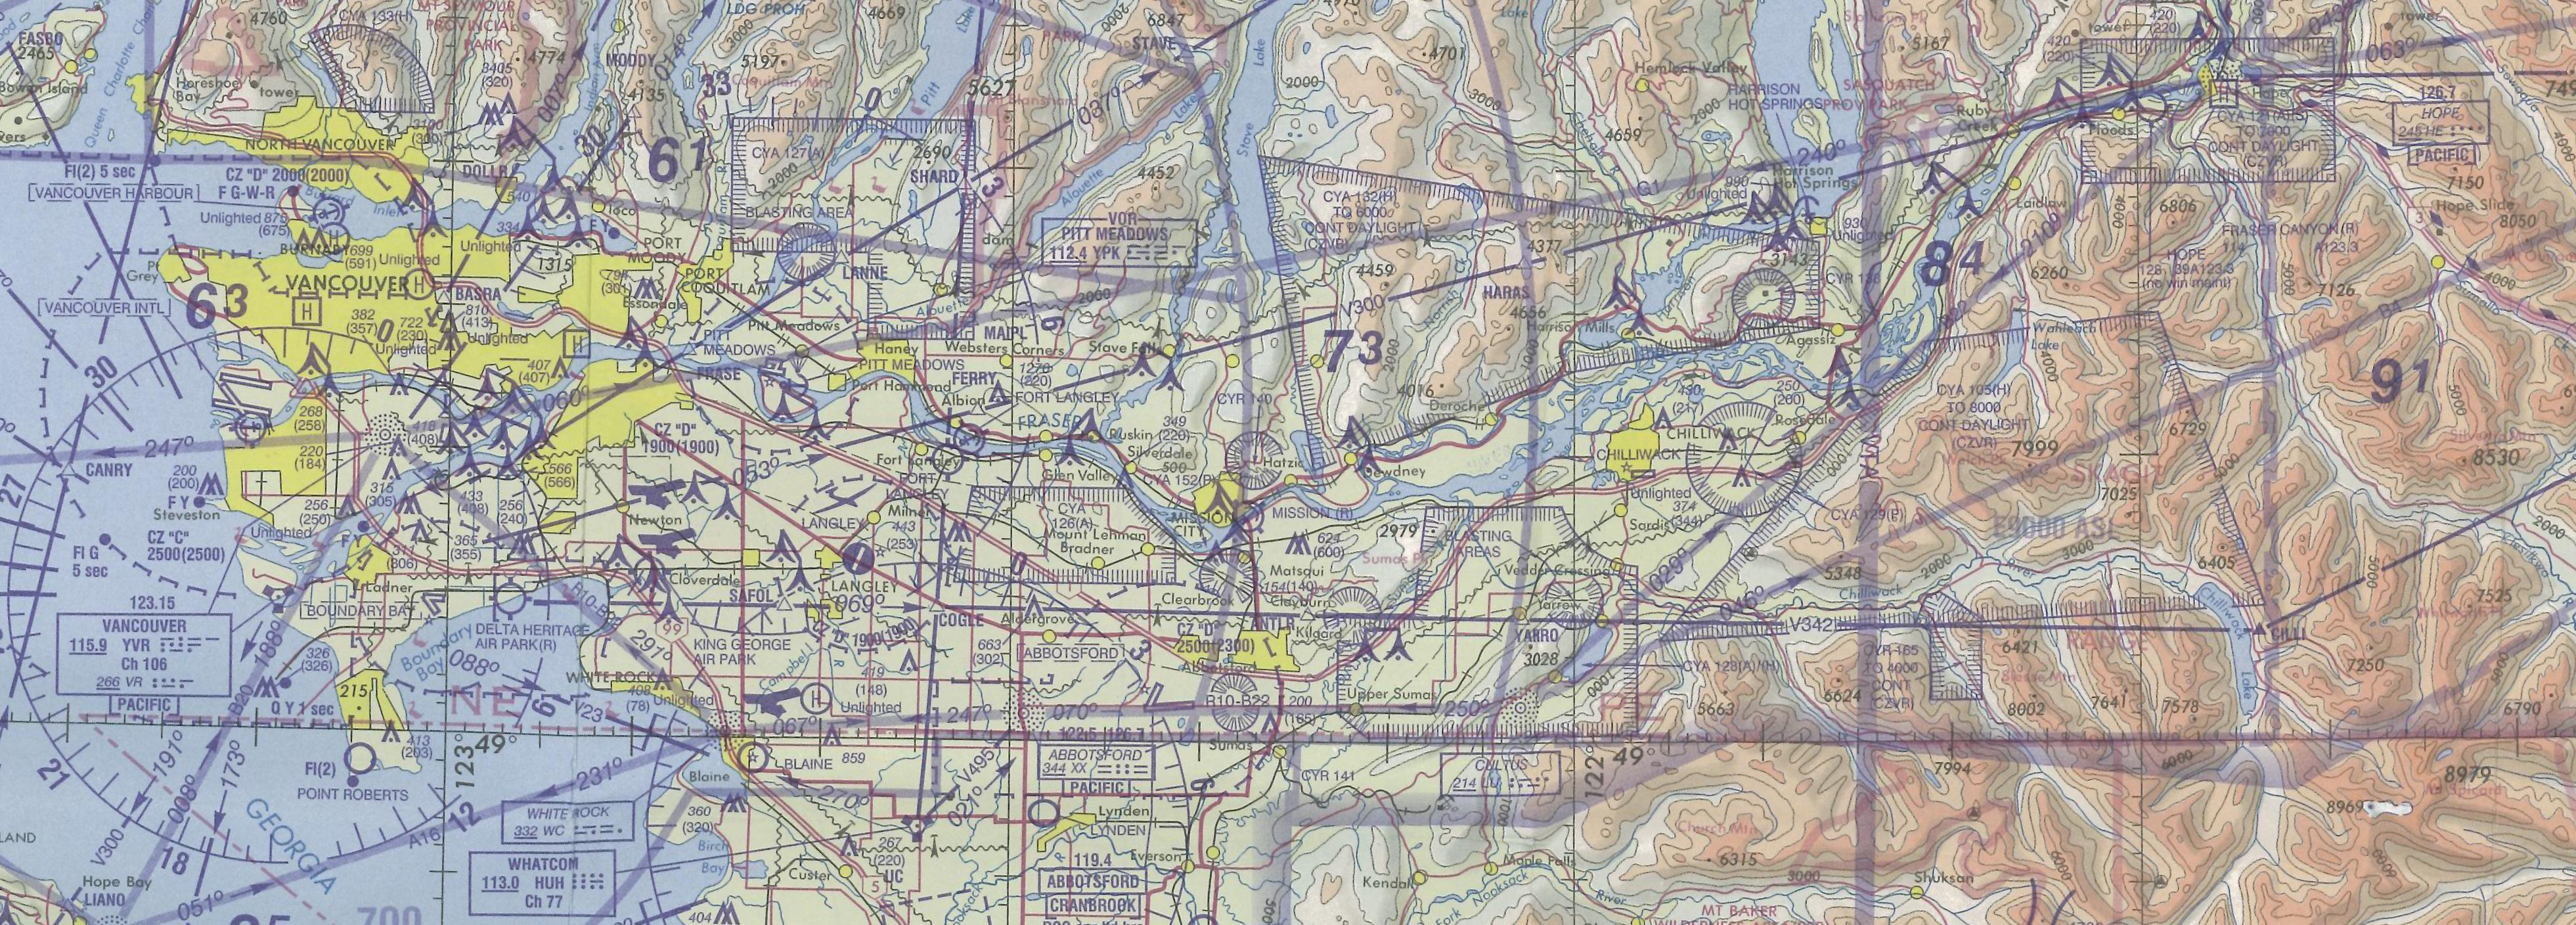 Vancouver to Chilliwack, Langley Flying School's Map Room